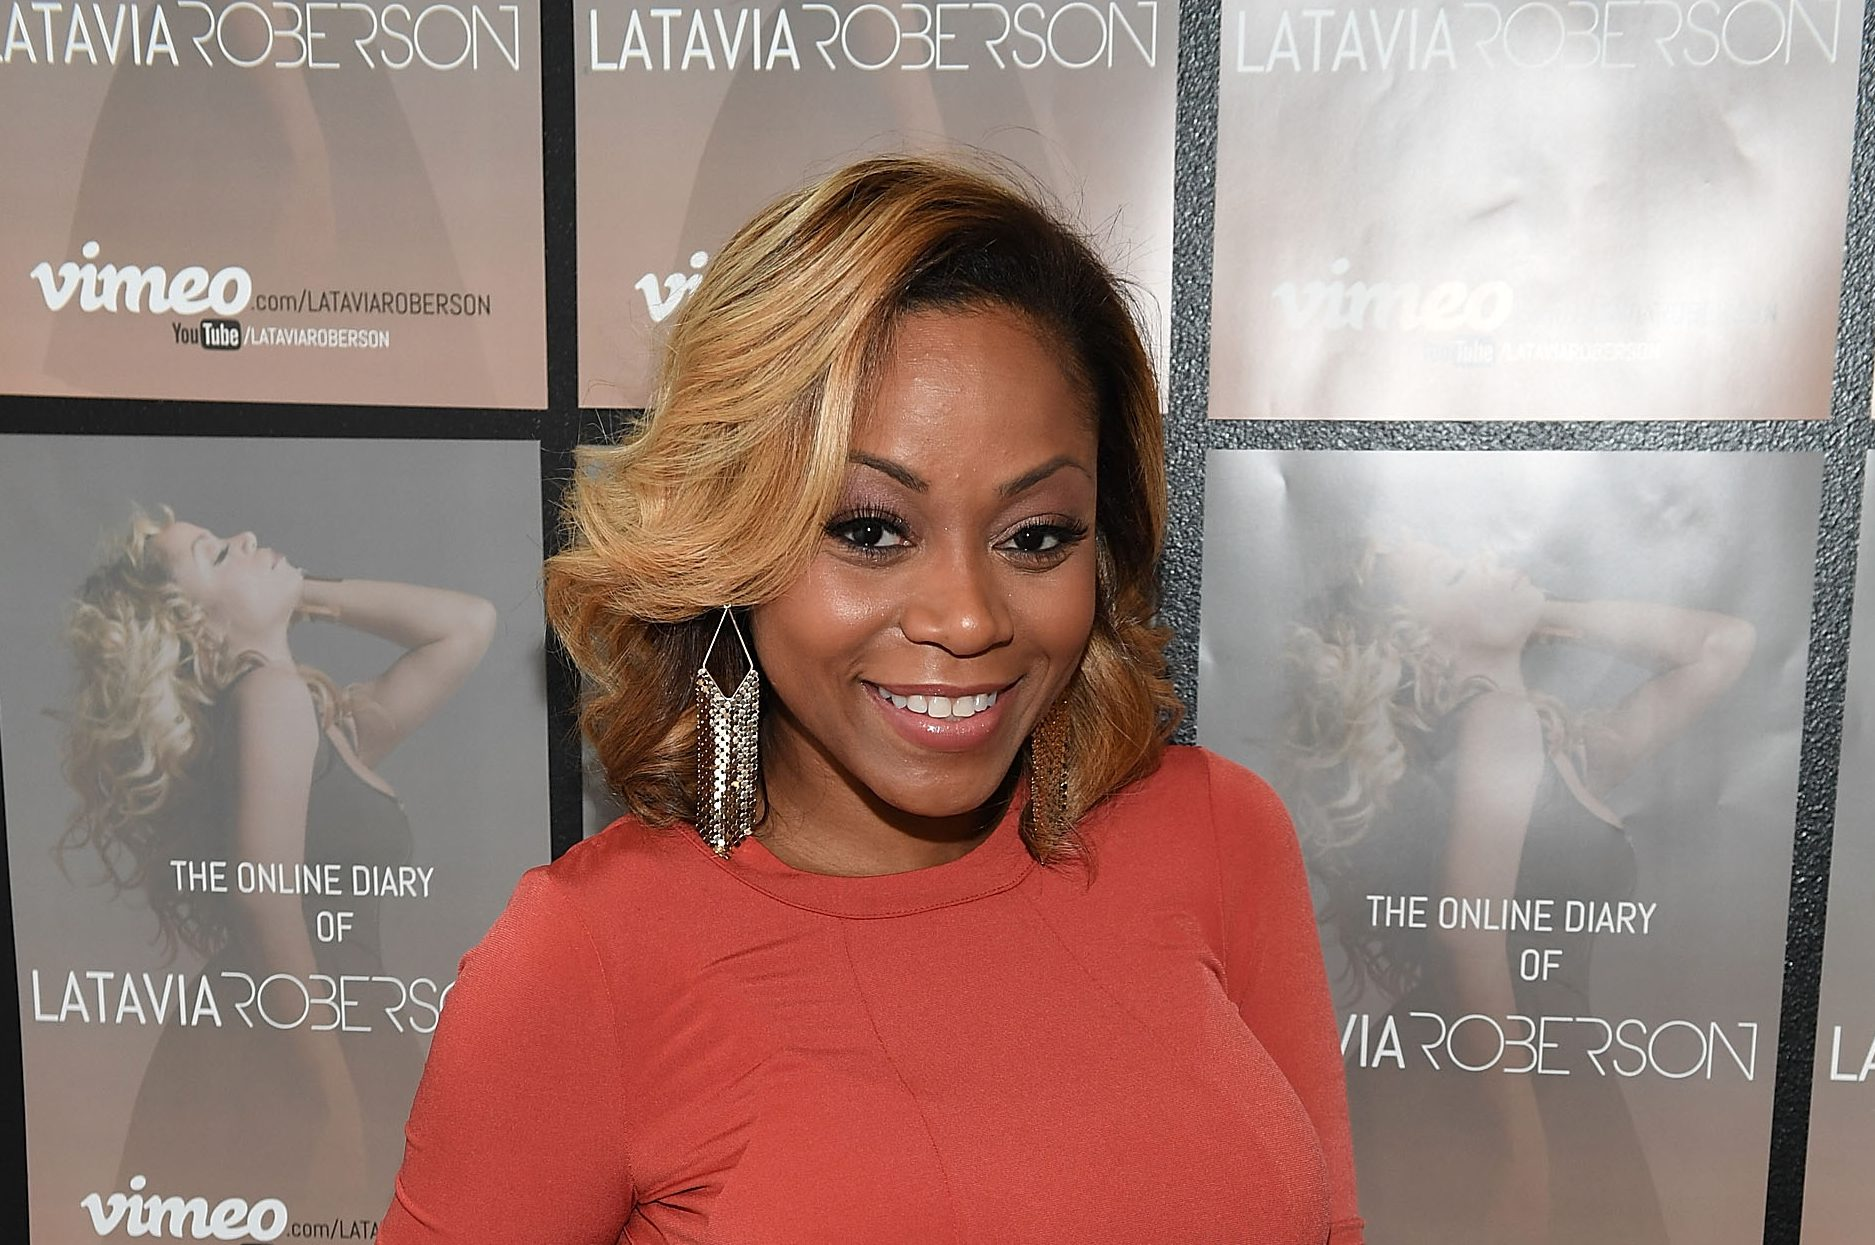 'The Online Diary Of Latavia Roberson' Private Screening